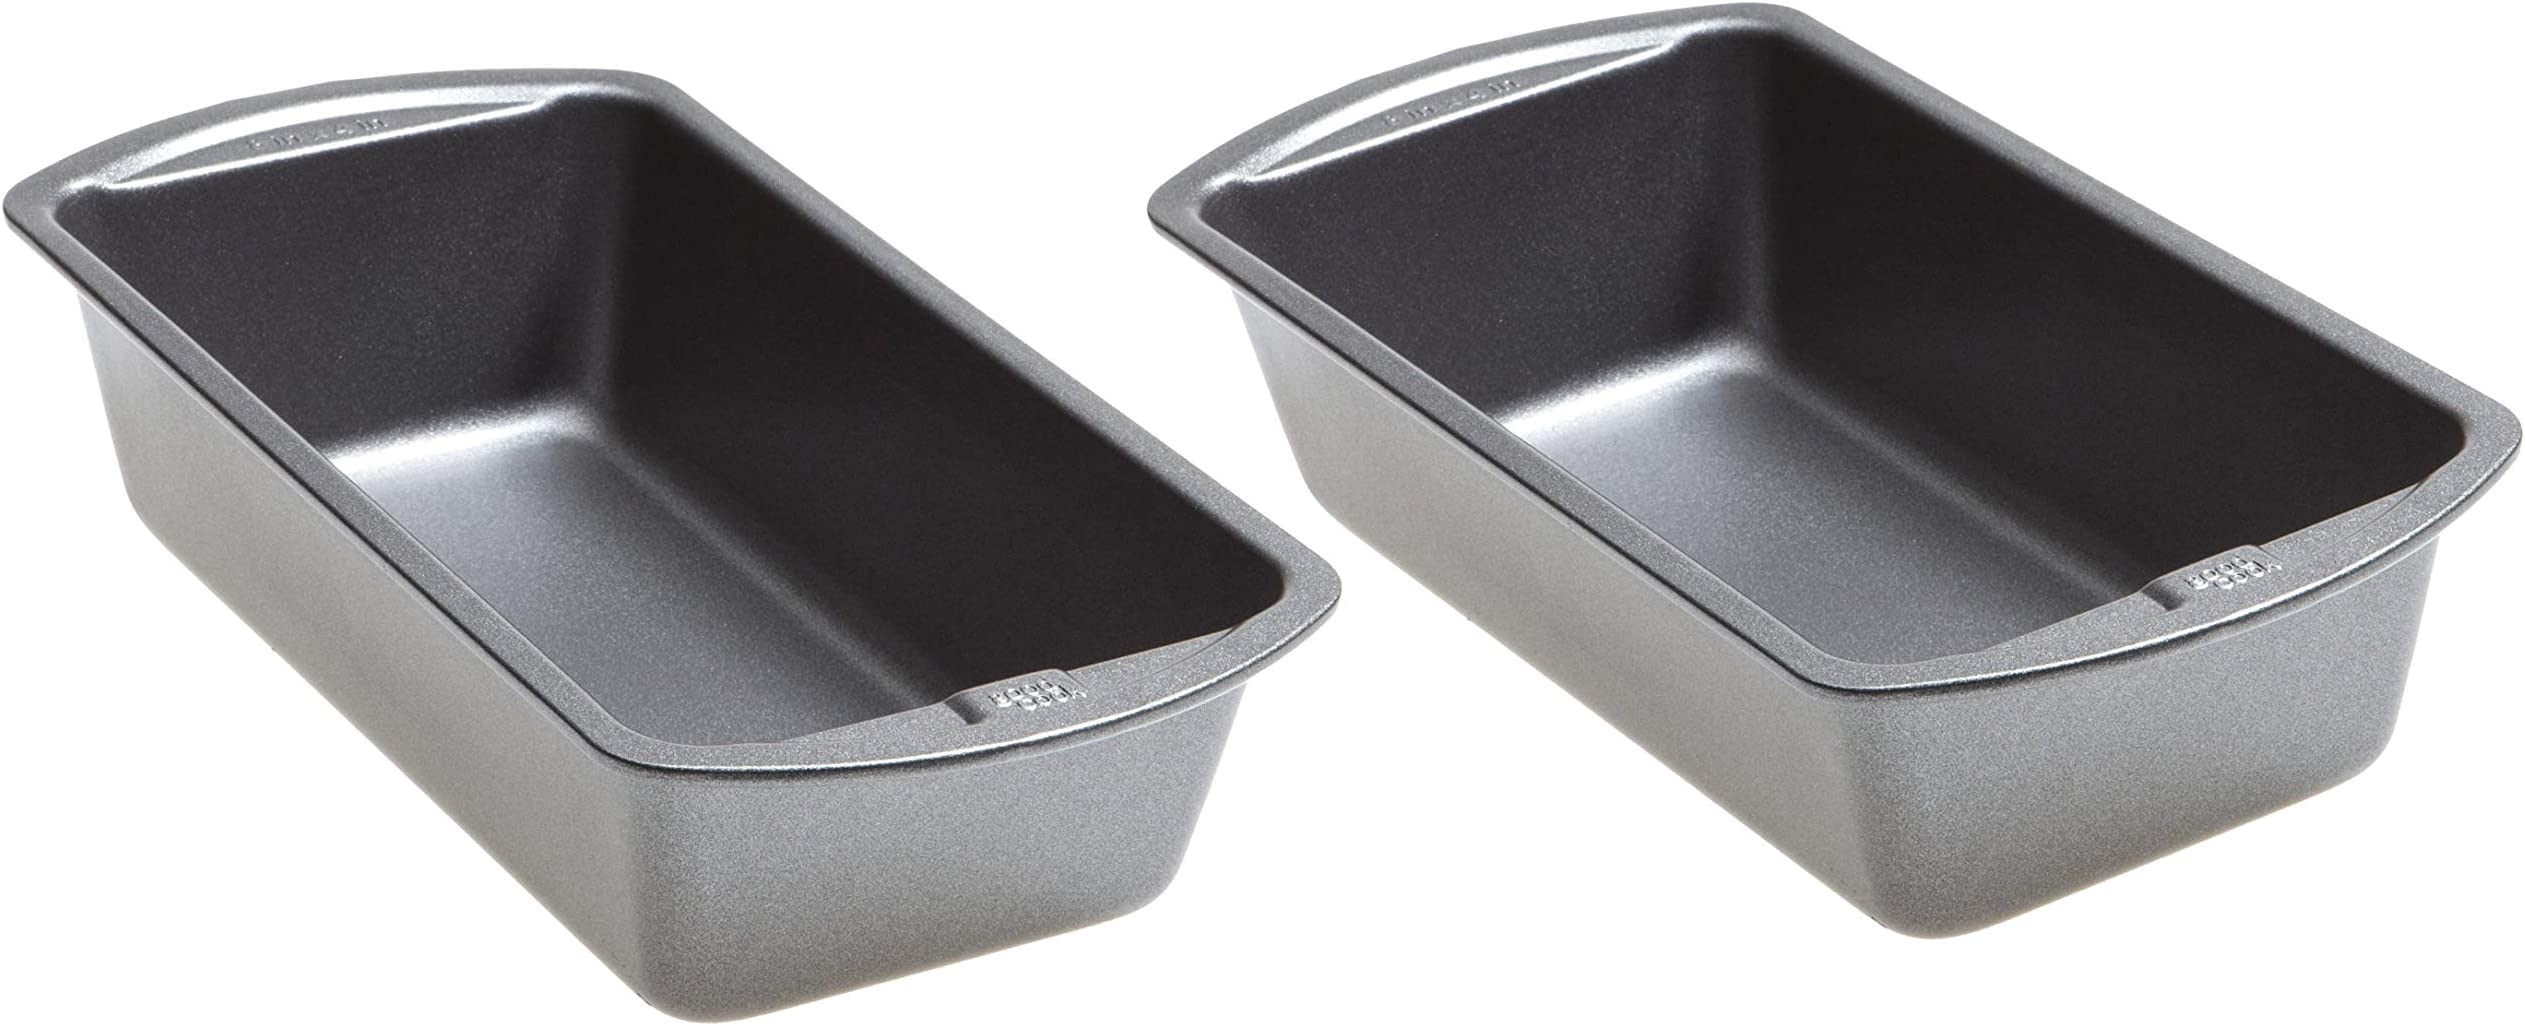 Good Cook 7428419185195 8 Inch x 4 Inch Loaf Pan (8 x 4 Inch (2 Pack), Stainless